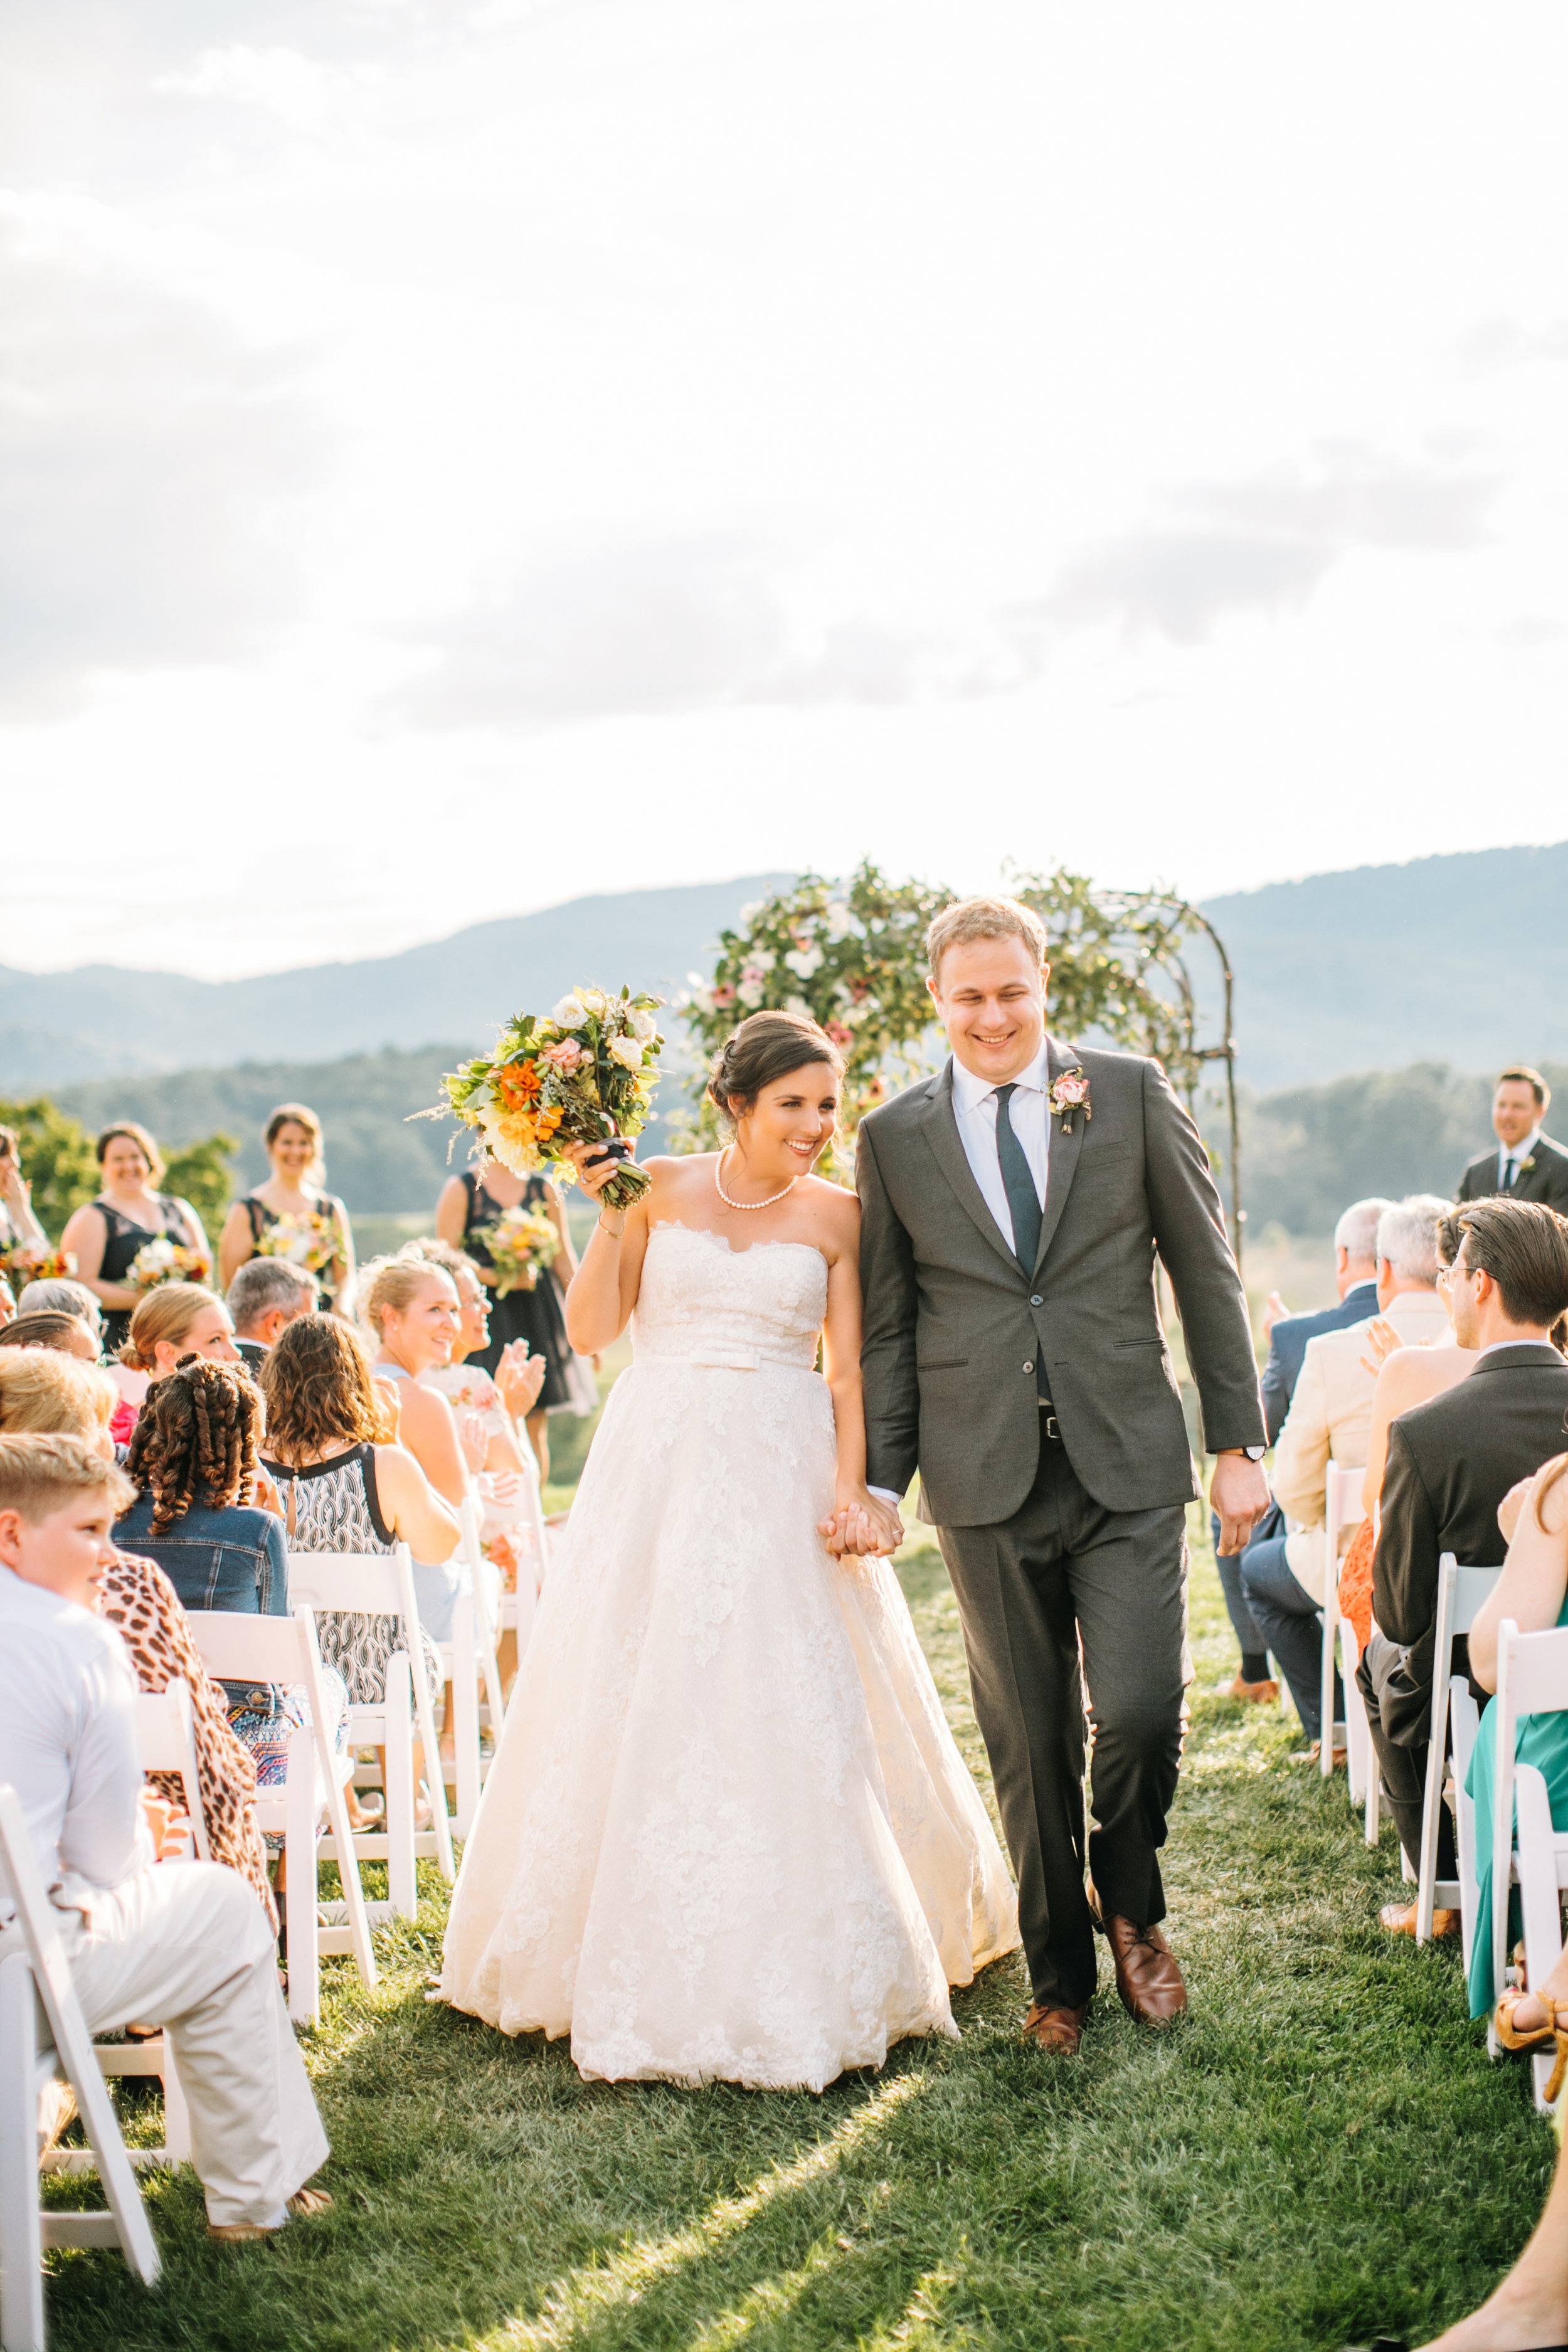 katie stoops photography-pippin hill-ashley baber weddings27.jpg